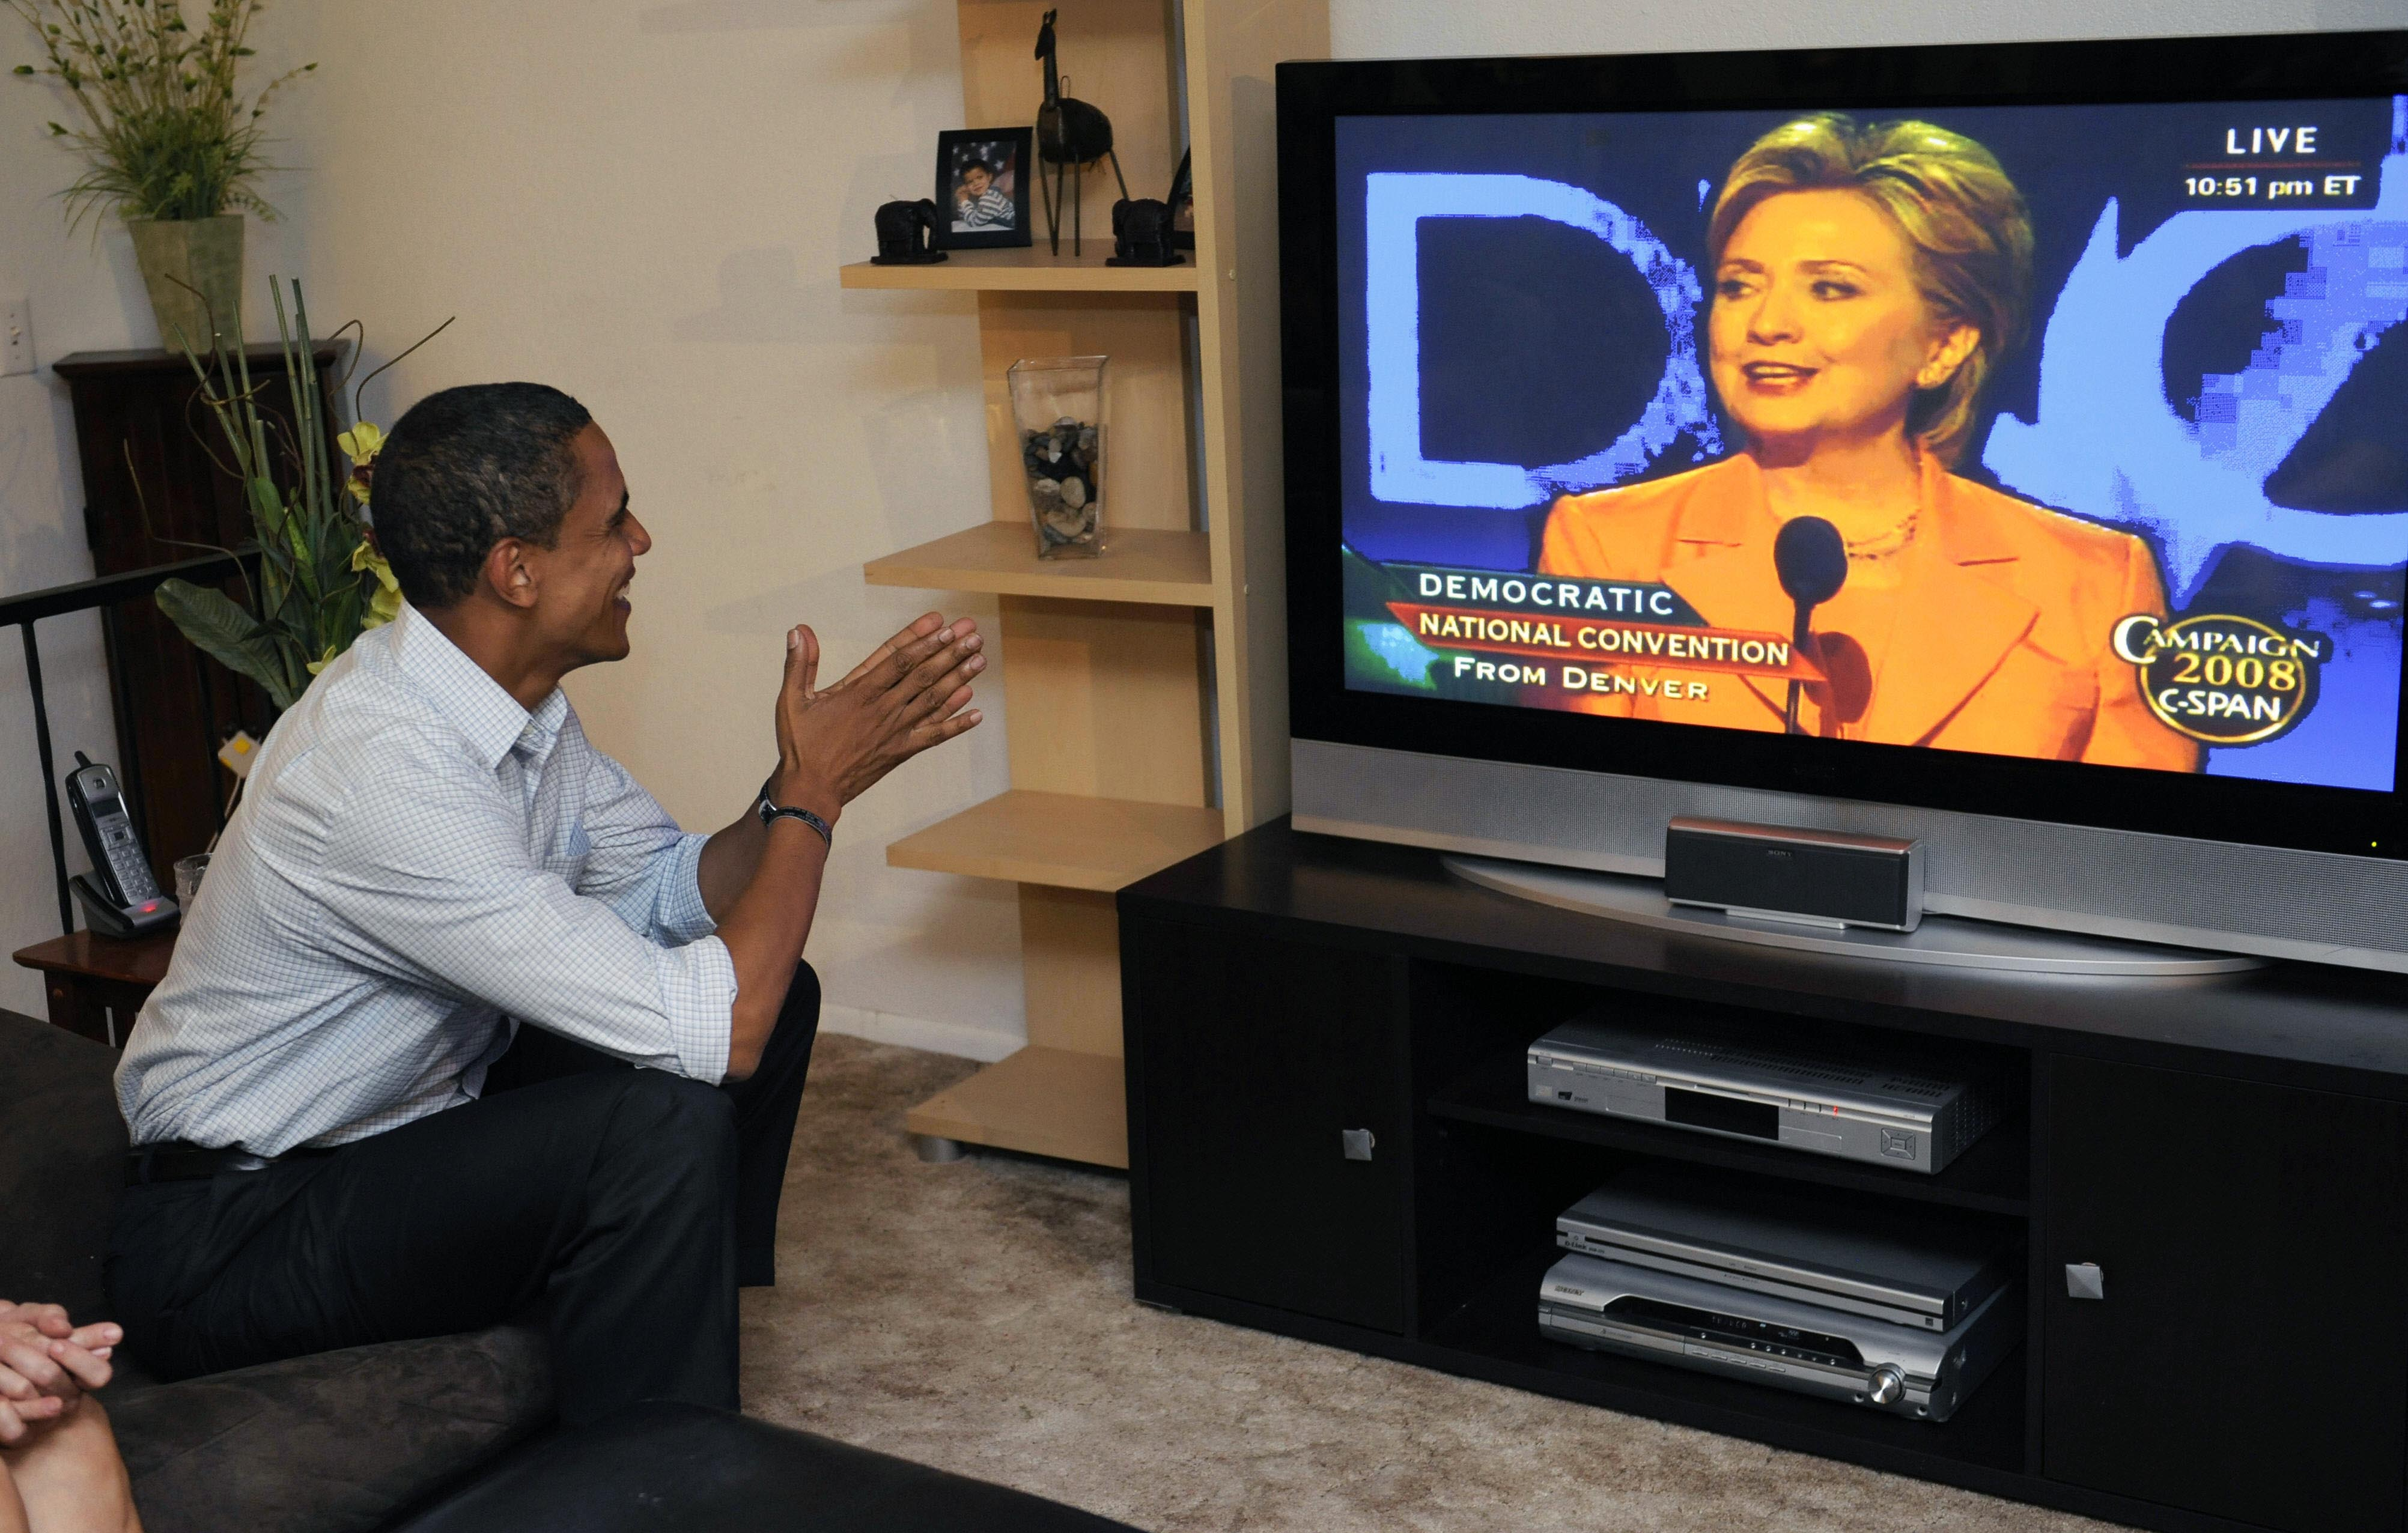 August 2008 Democratic presidential candidate Barack Obama watches a broadcast of Hillary Clinton addressing the Democratic National Convention from a television in Billings, Mt. on Aug. 26, 2008.